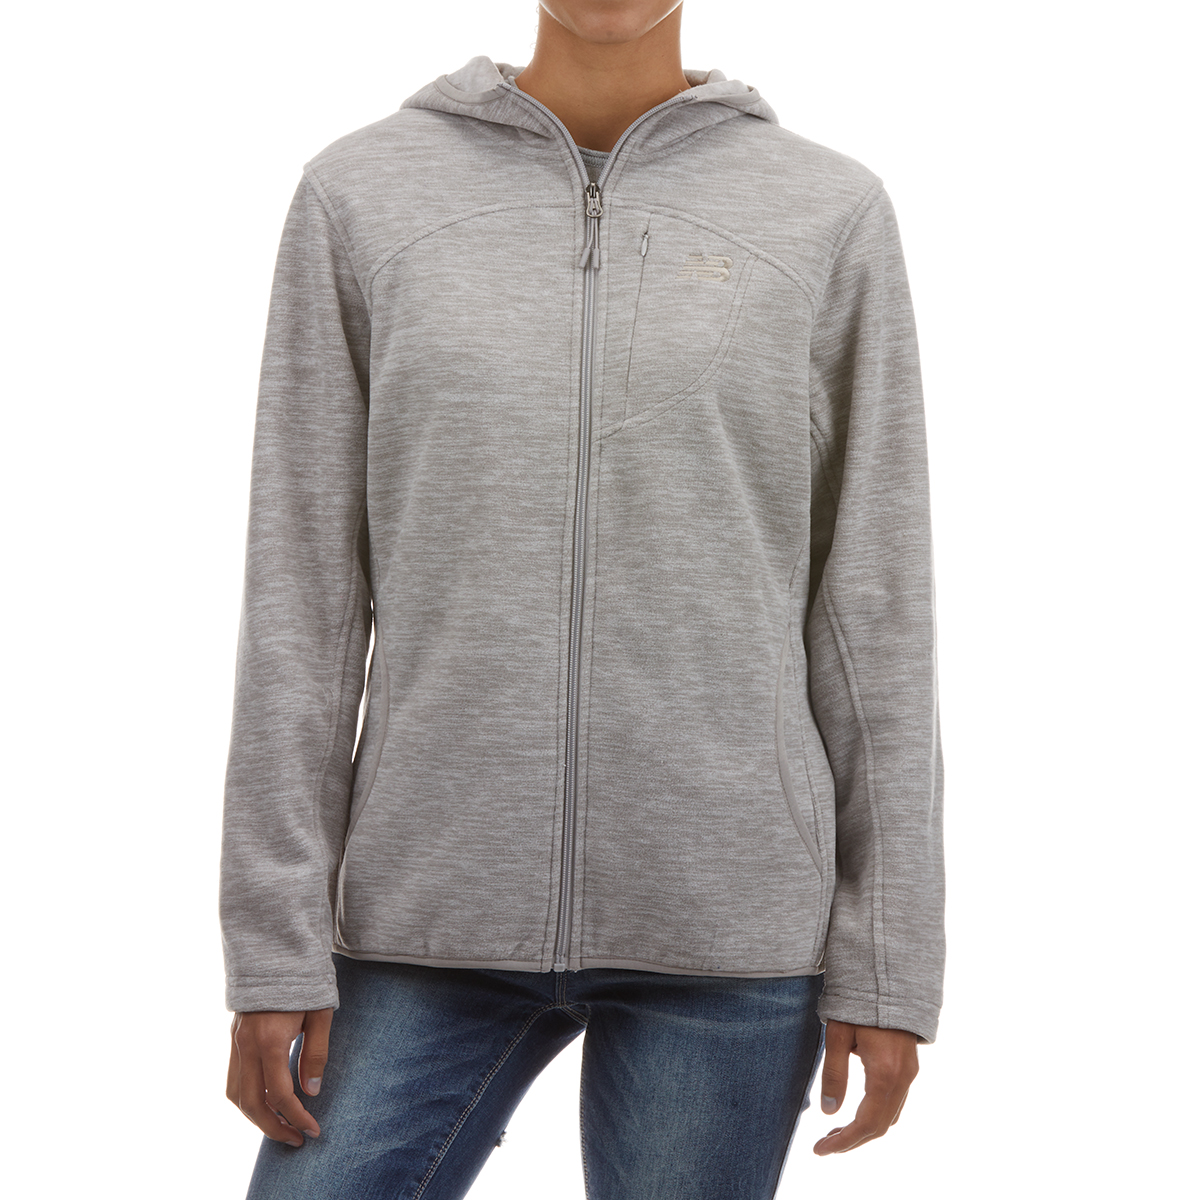 New Balance Women's Full Zip Polar Fleece Spacedye Hoodie - White, M